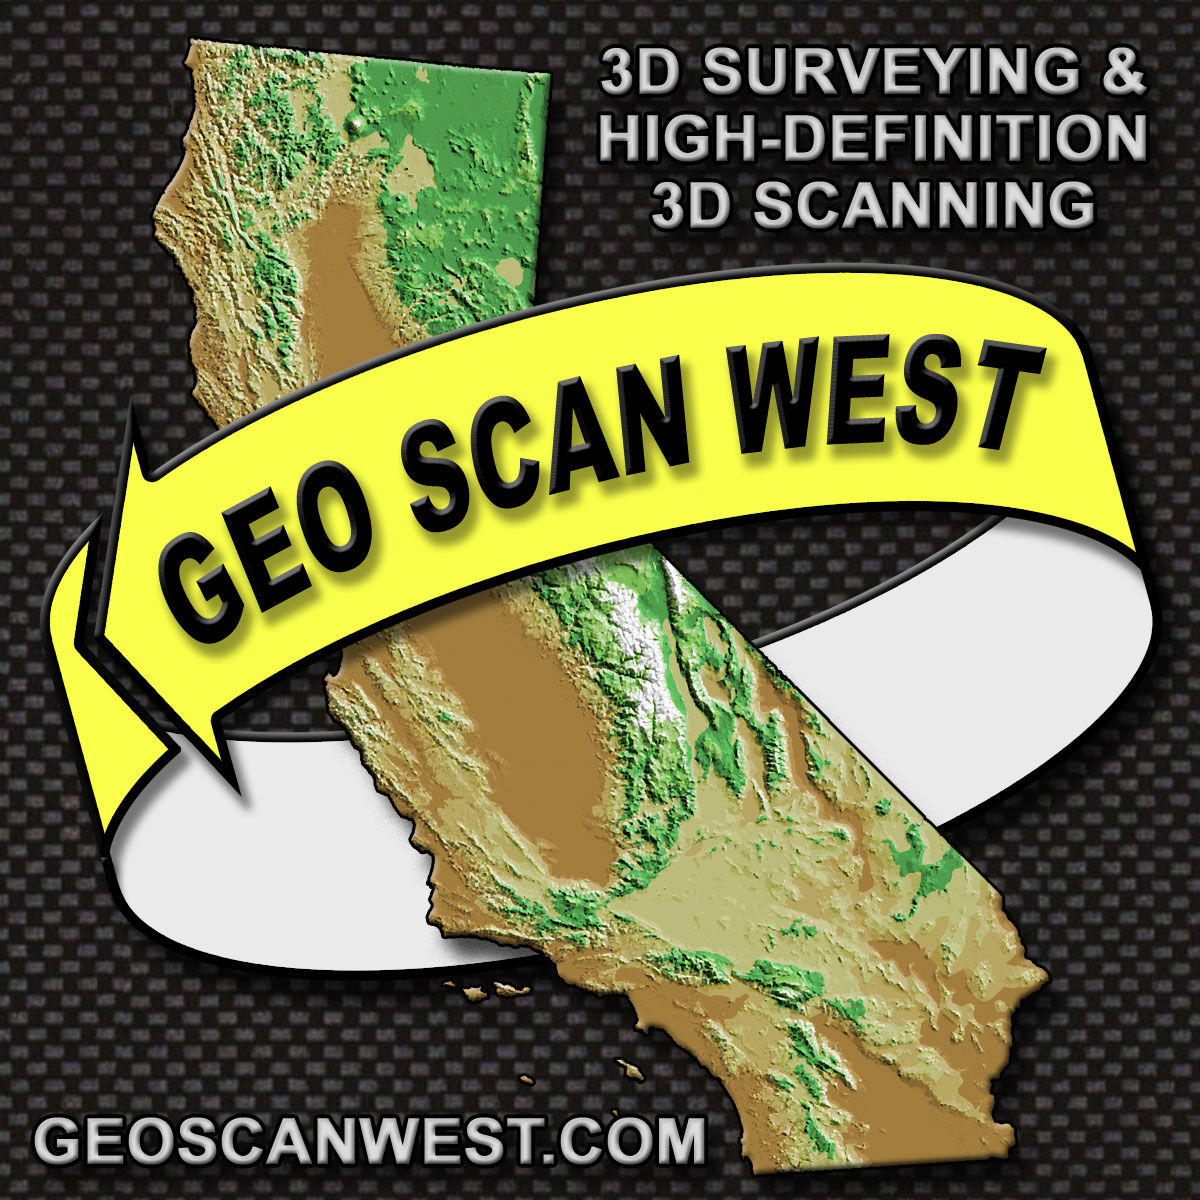 GEO SCAN WEST Surveying and High-Definition 3D Scanning in California